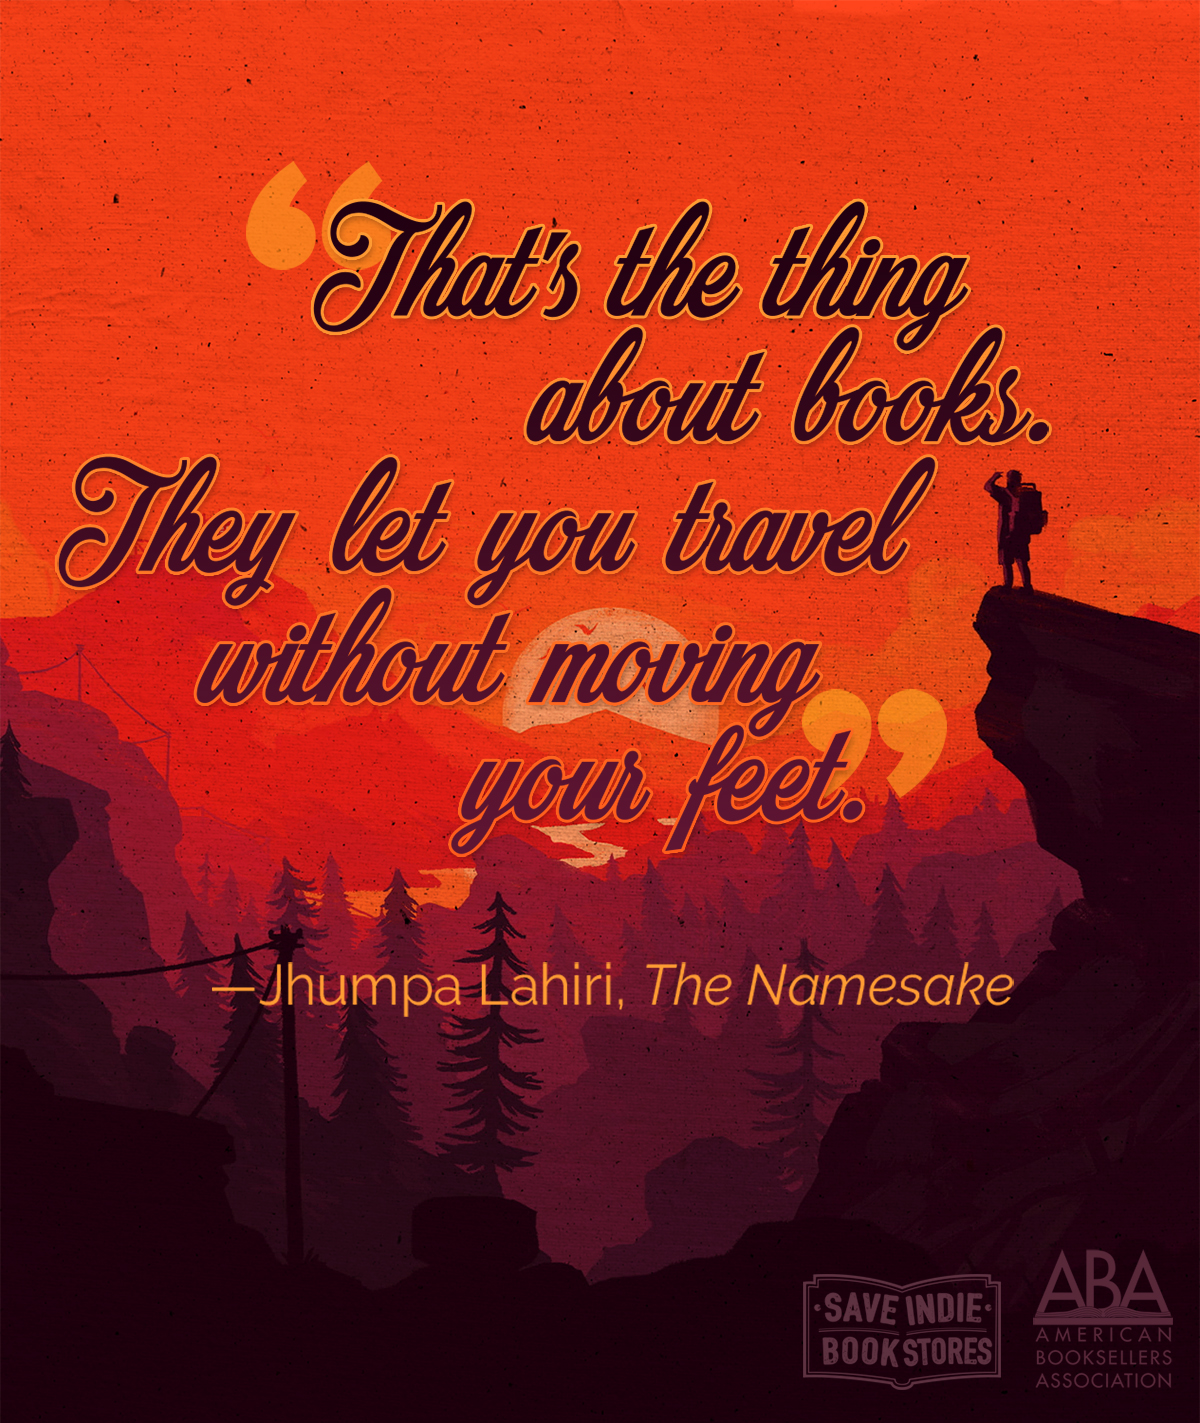 books let your travel without moving your feet - Jhumpa Lahiri